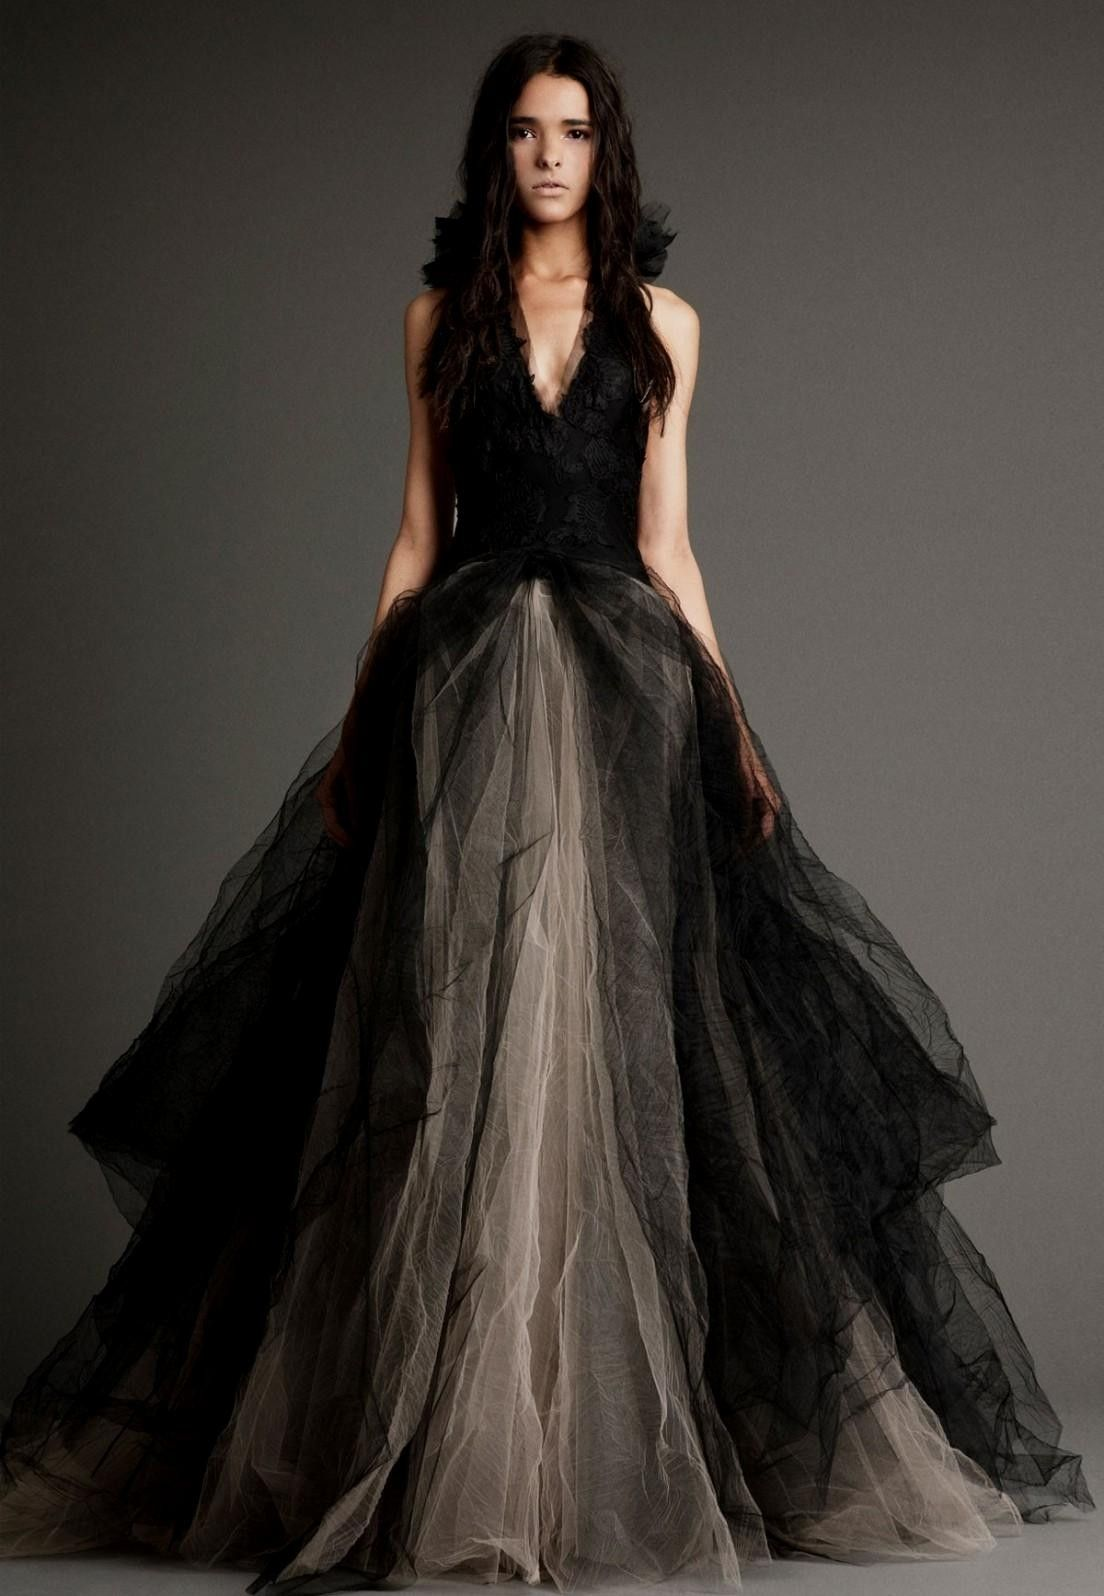 black wedding dresses vera wang World dresses | Captured Beauty ...